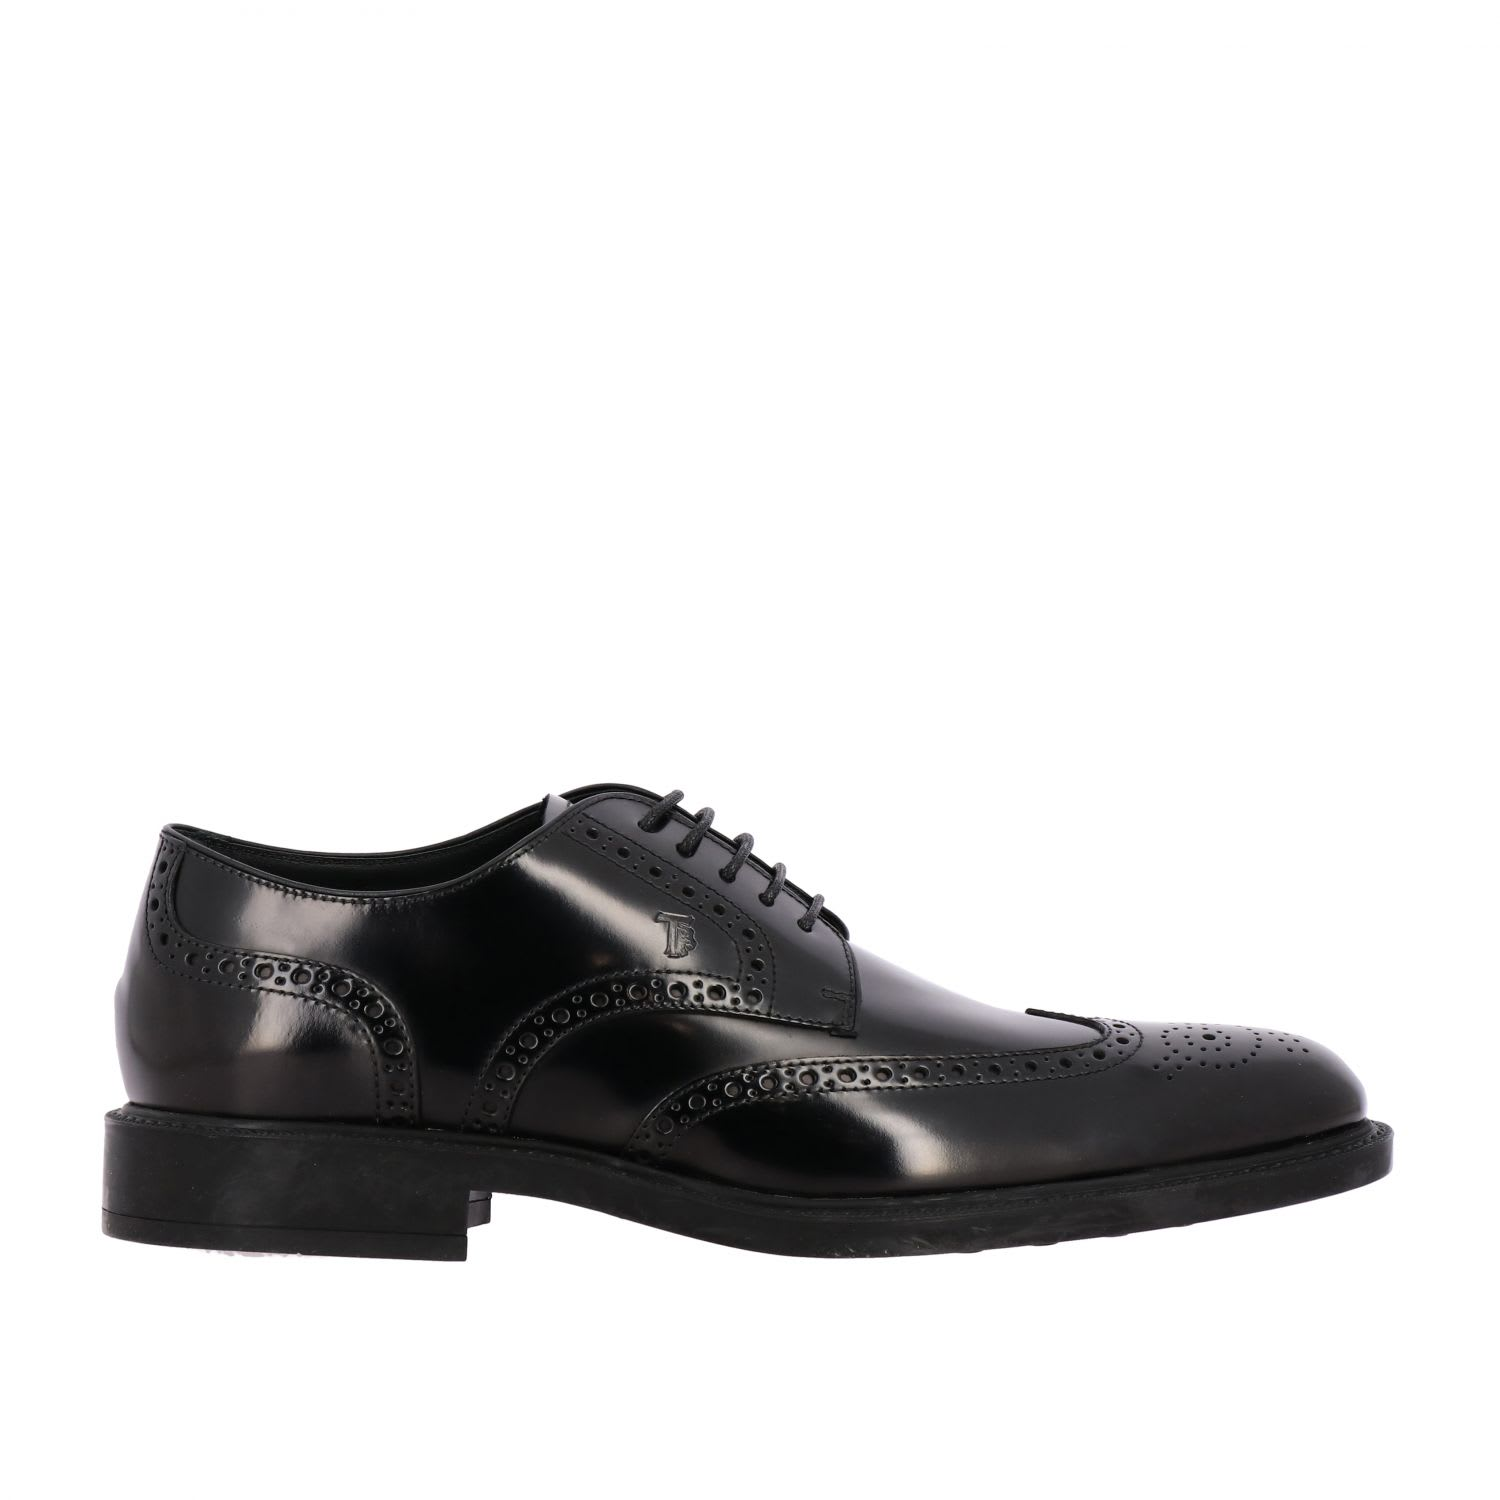 Brogue Shoes Tods Derby In Brushed Leather With Dovetail Brogue MotifComposition: 100% Calfskin